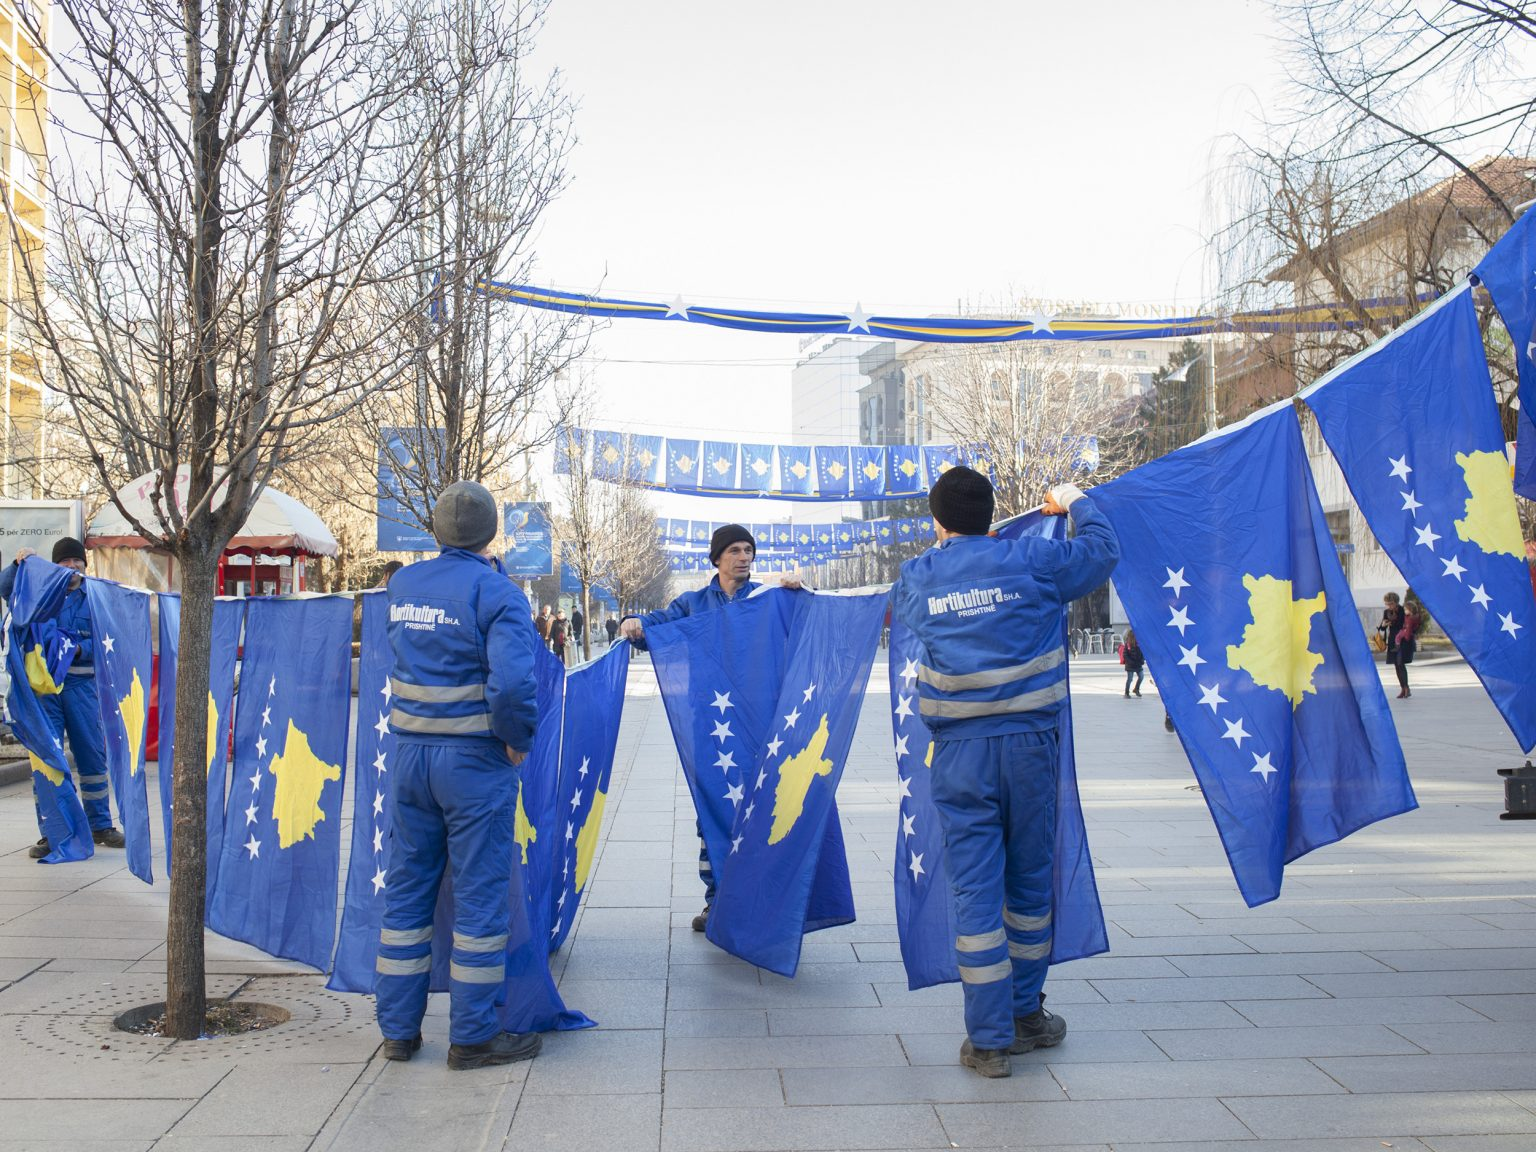 Preparation of Mother Teresa Boulevard in Prishtina / Priština to celebrate the ninth year of inde- pendence. To date, Kosovo gained diplomatic recognition as a sovereign state by 111 UN member states.